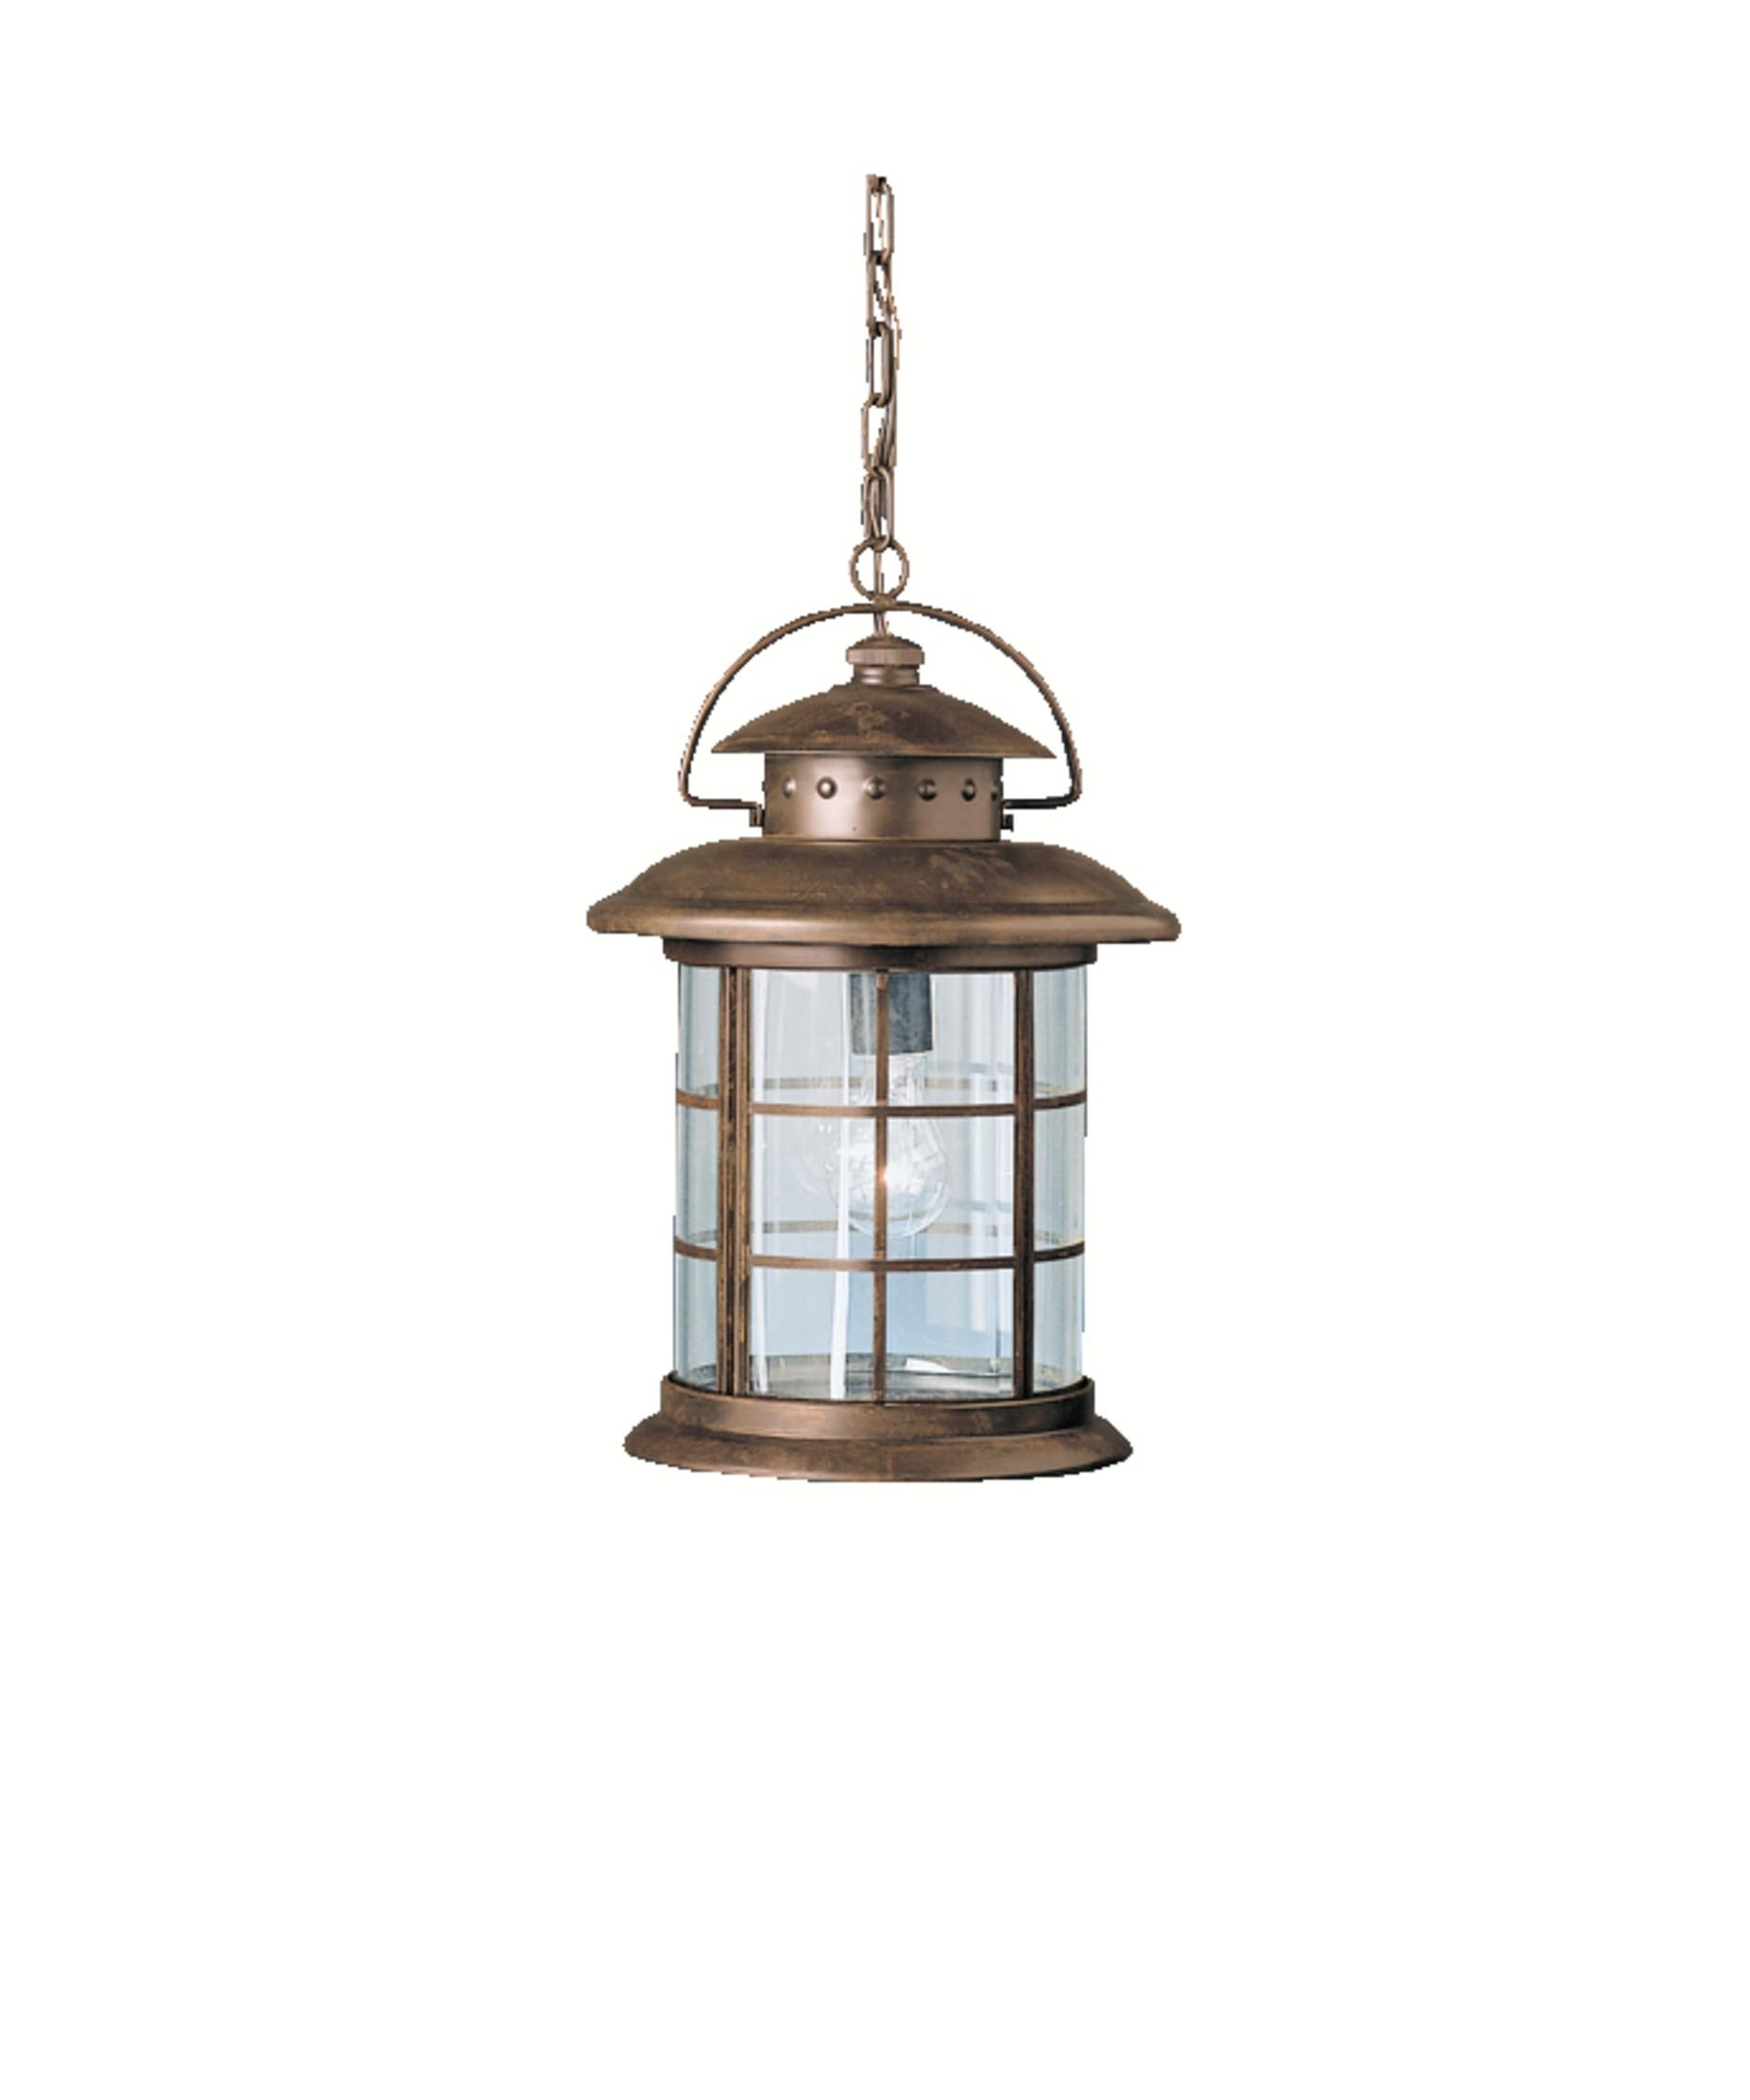 Newest Rustic Outdoor Ceiling Lights Throughout Kichler 9870 Rustic 11 Inch Wide 1 Light Outdoor Hanging Lantern (View 11 of 20)